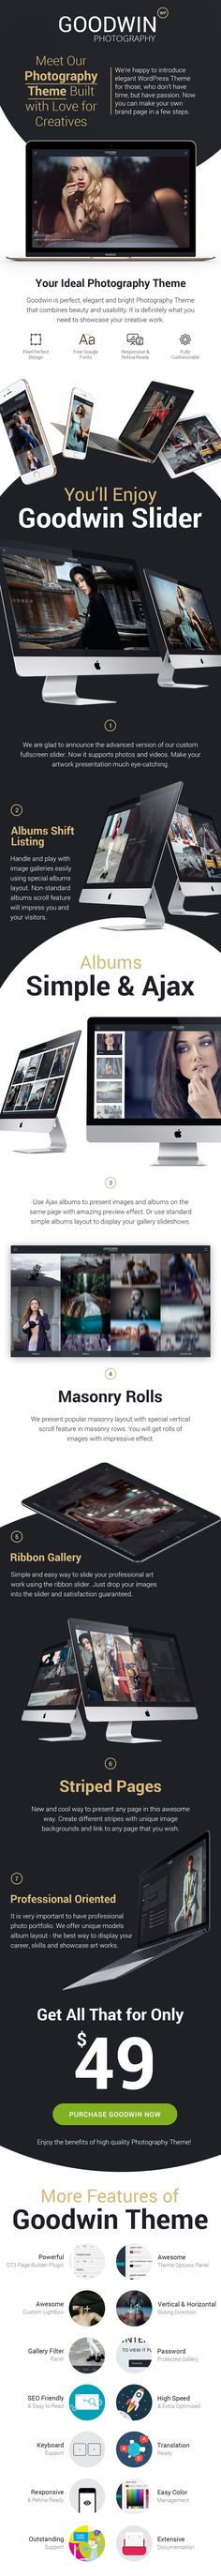 Photography – GoodWin Photo & Video WordPress ThemeAbsolutely fantistic, modern and creative WordPress theme specially designed and developed for photographers and videograpgers. The fullscreen la...